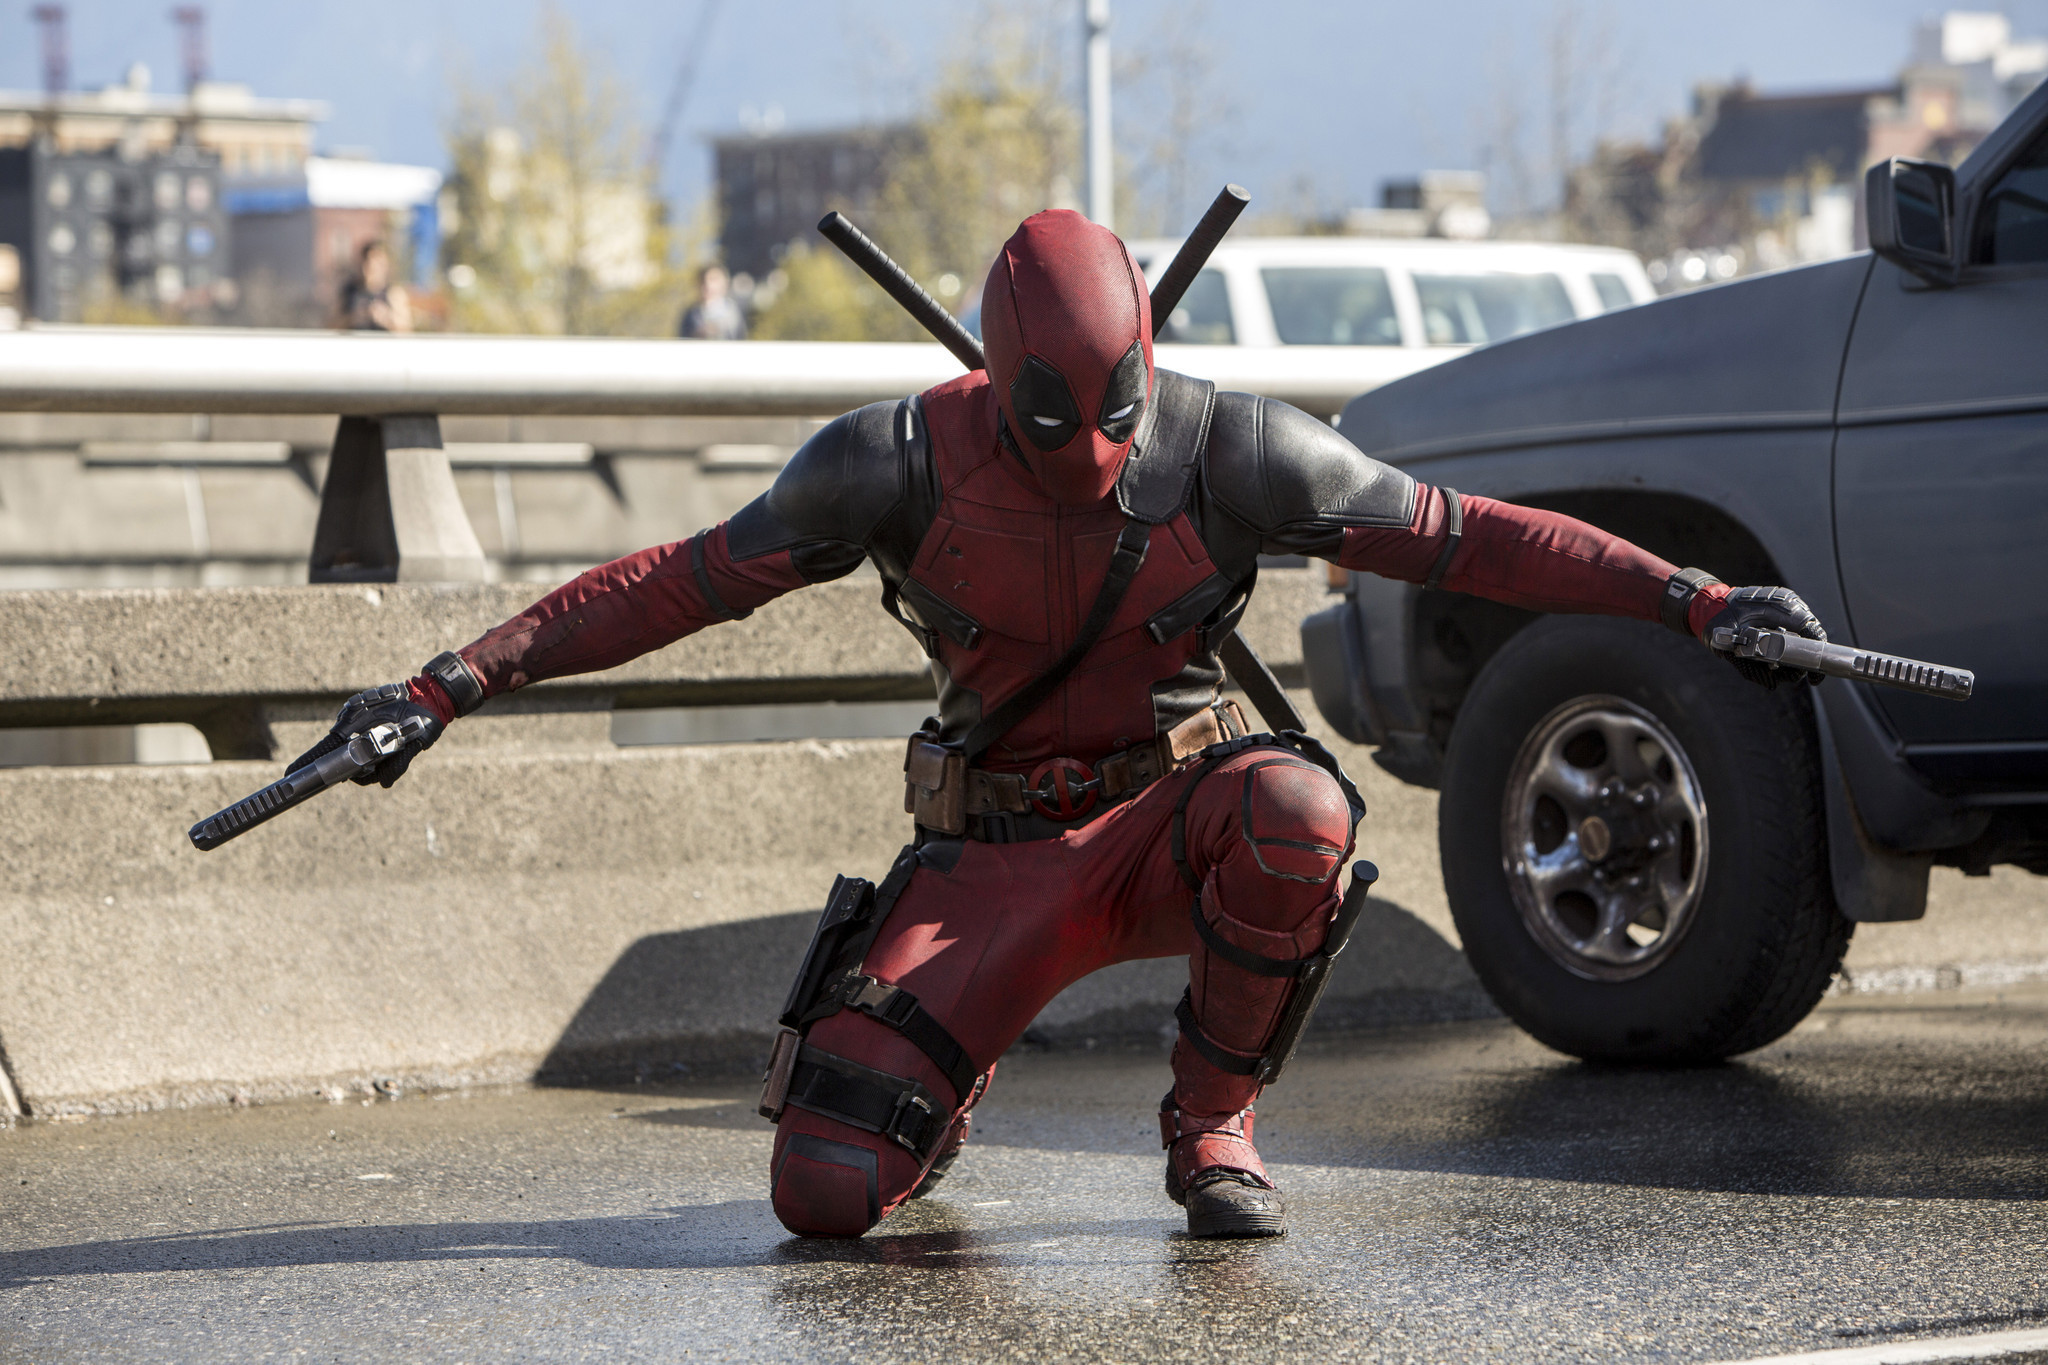 'deadpool' Gets The Laugh On 'how To Be Single' And 'zoolander